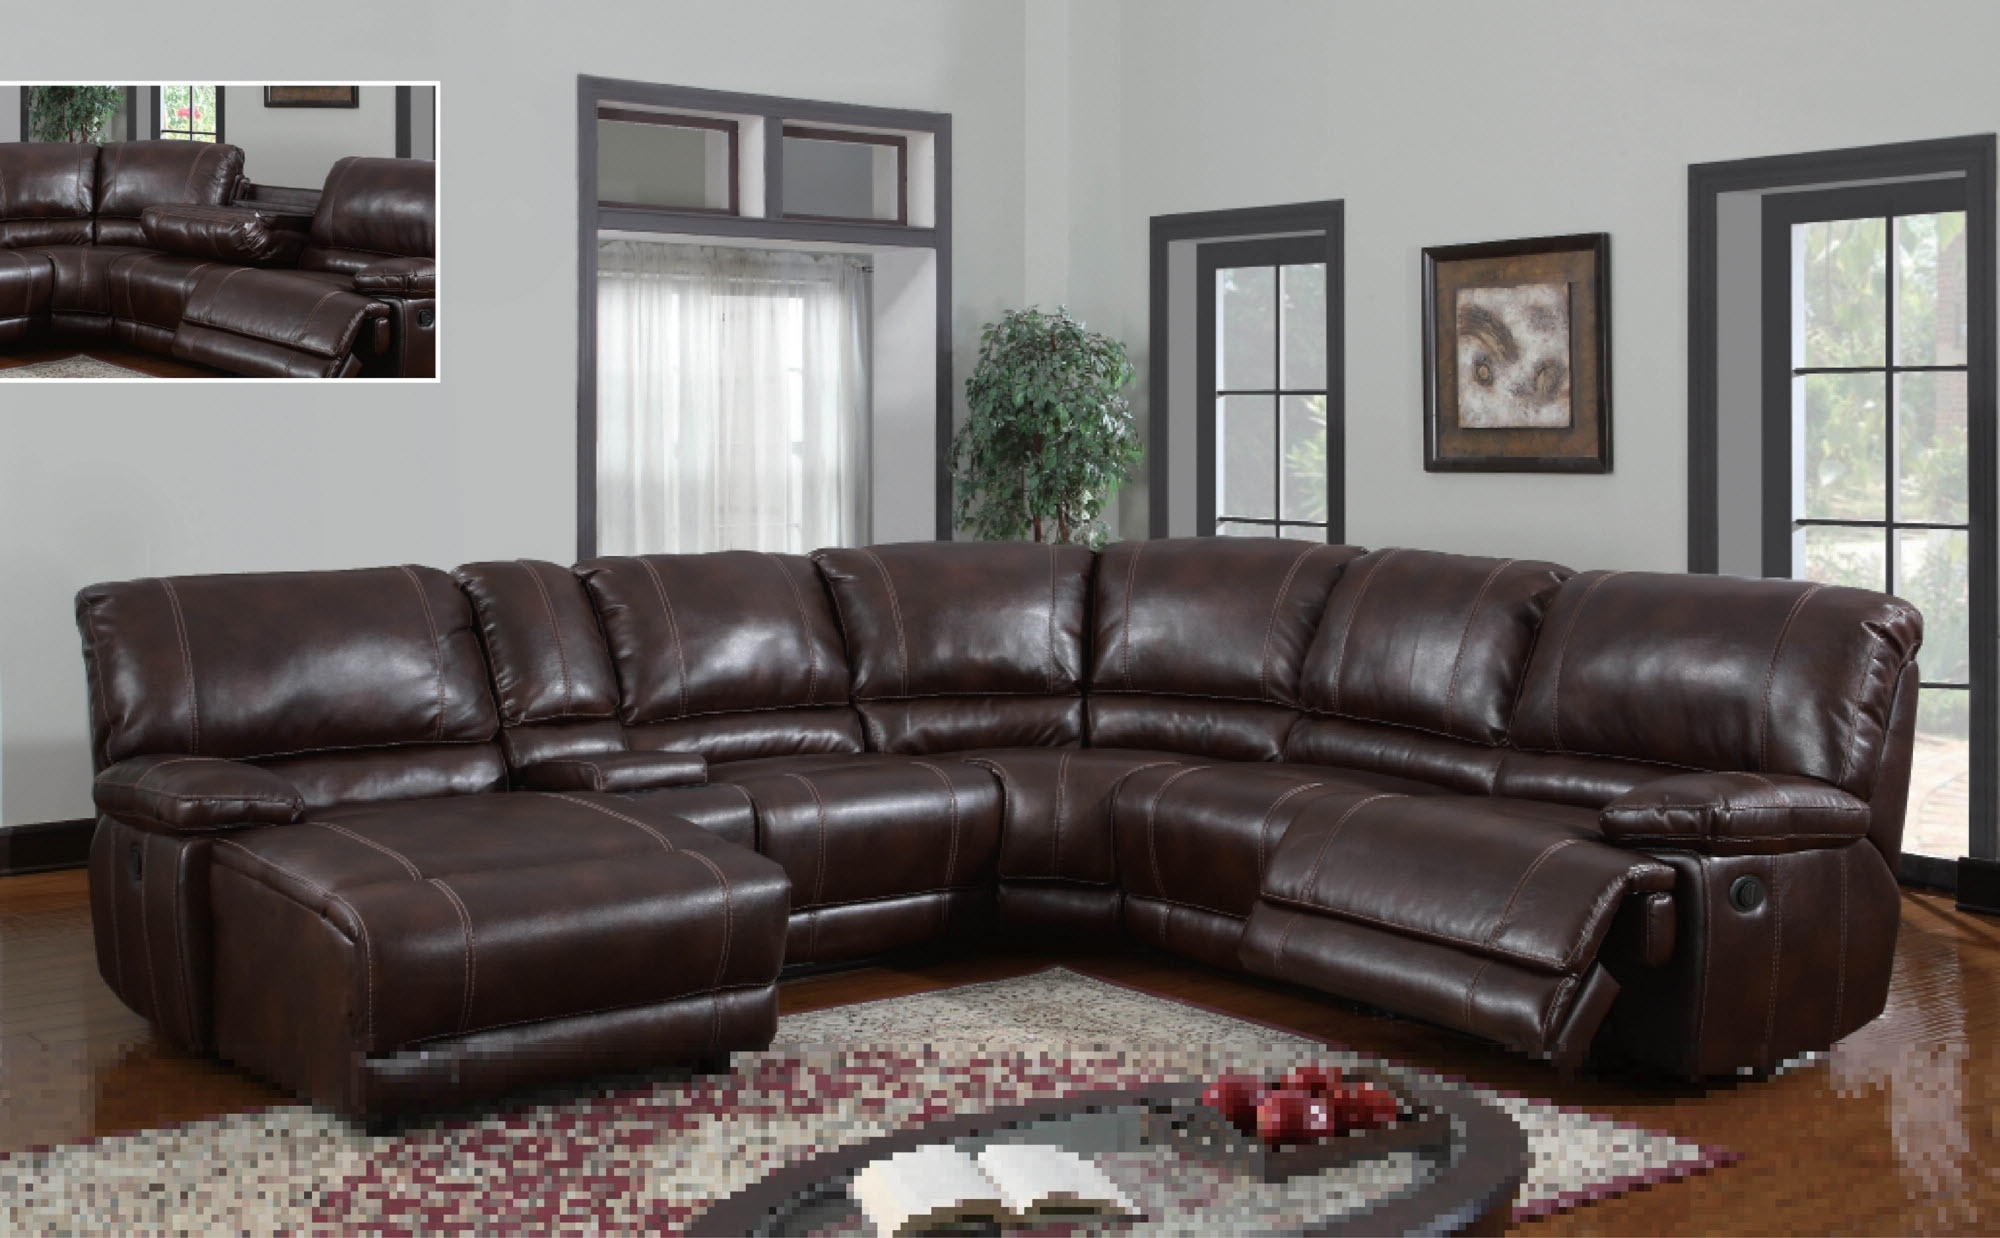 Popular Interesting Leather Sectional Sofa With Power Recliner 93 In Pertaining To Sectional Sofas With Power Recliners (View 4 of 20)